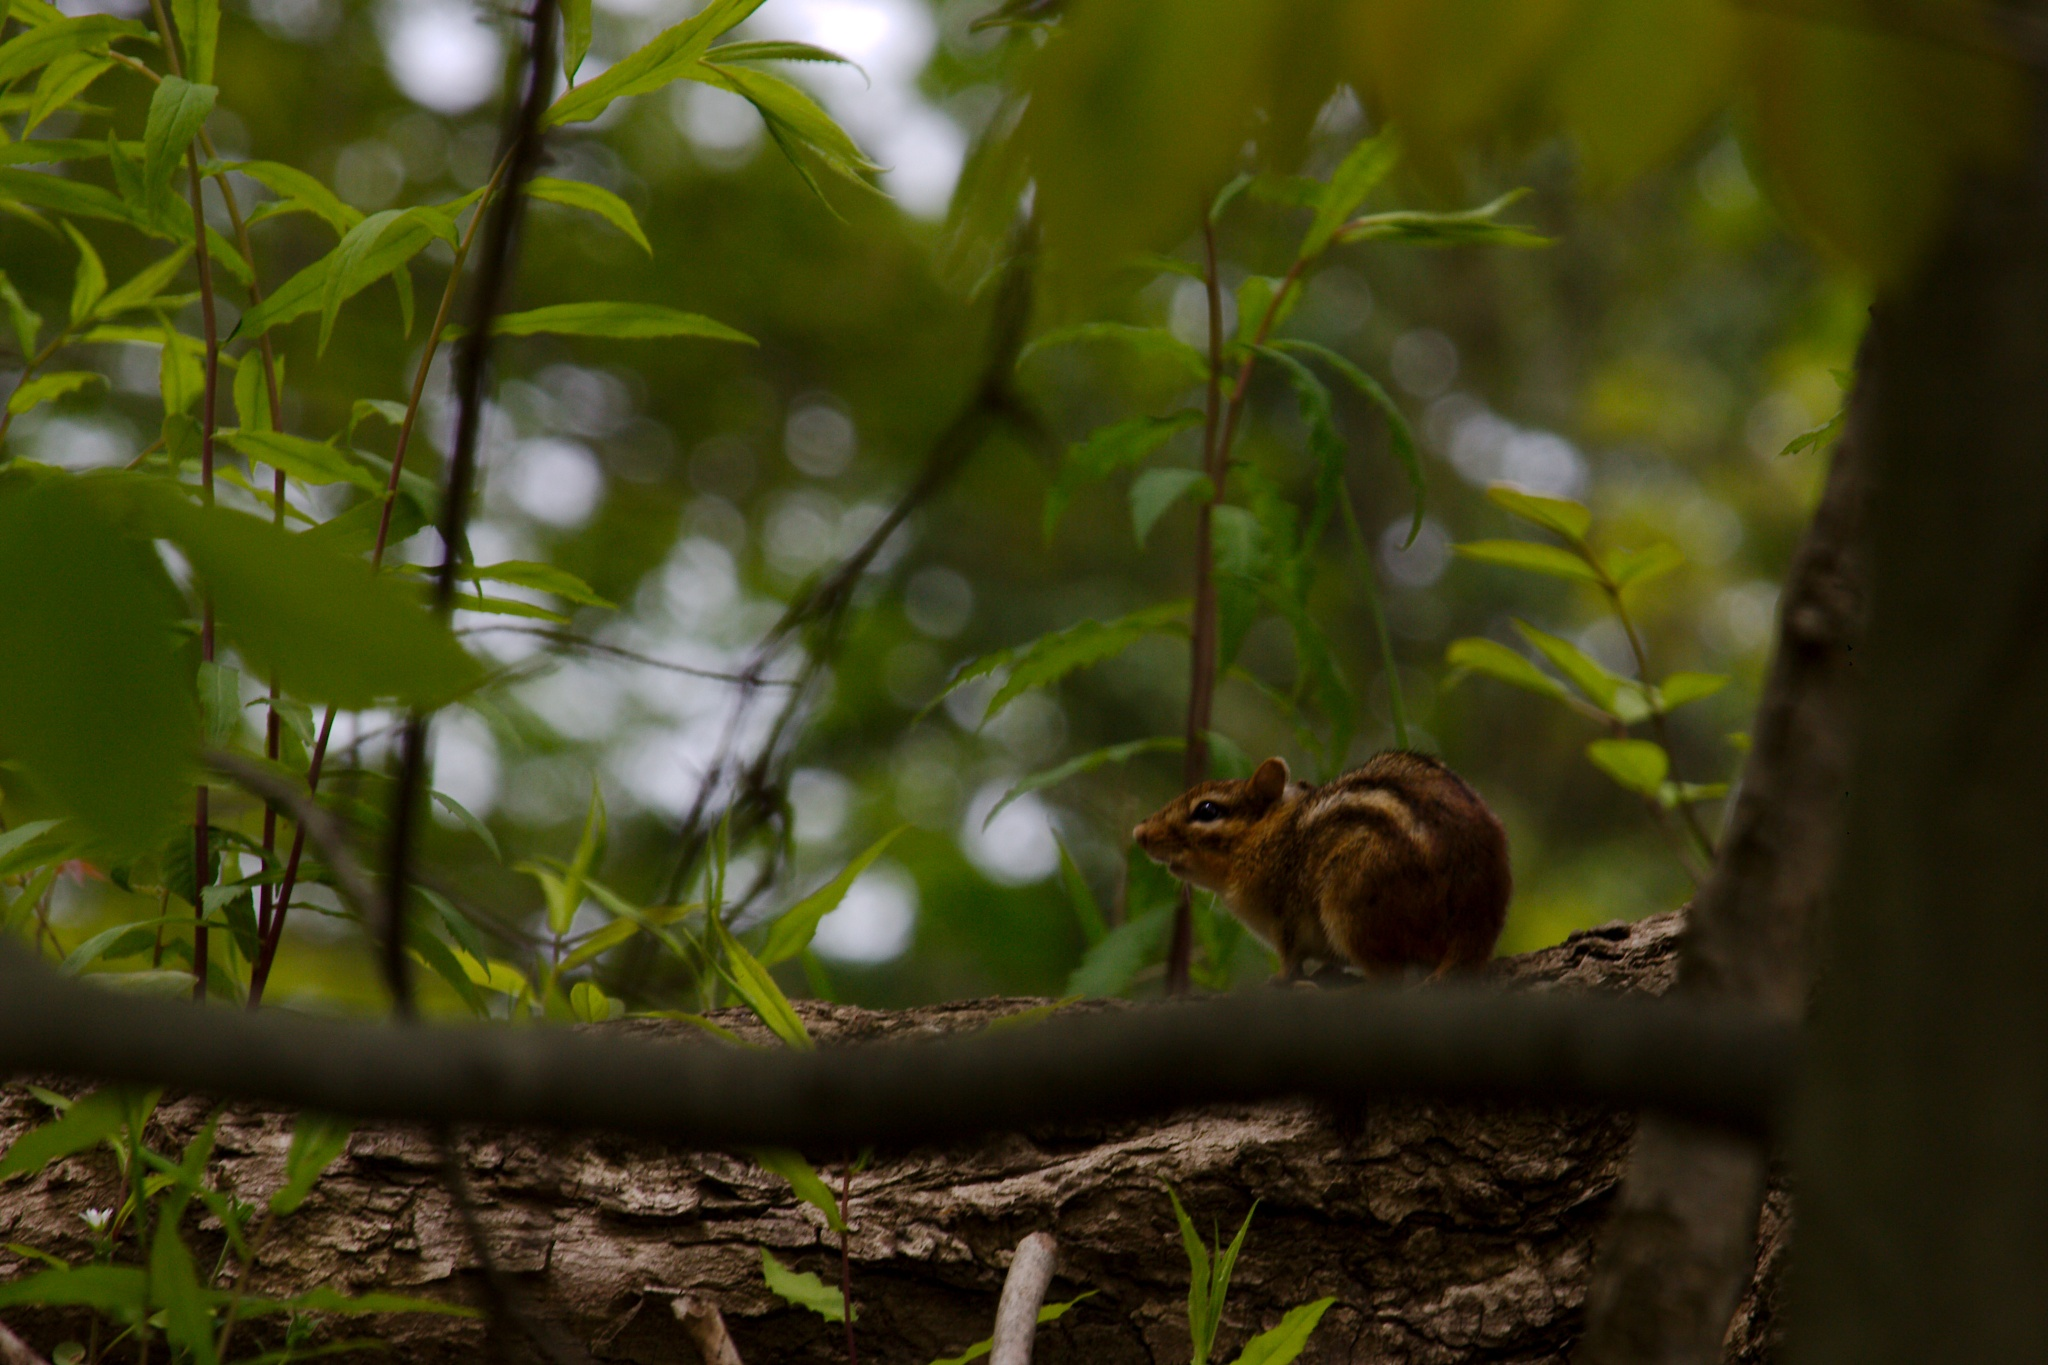 Chipmunk in Hiding (?) by Presnell Photography